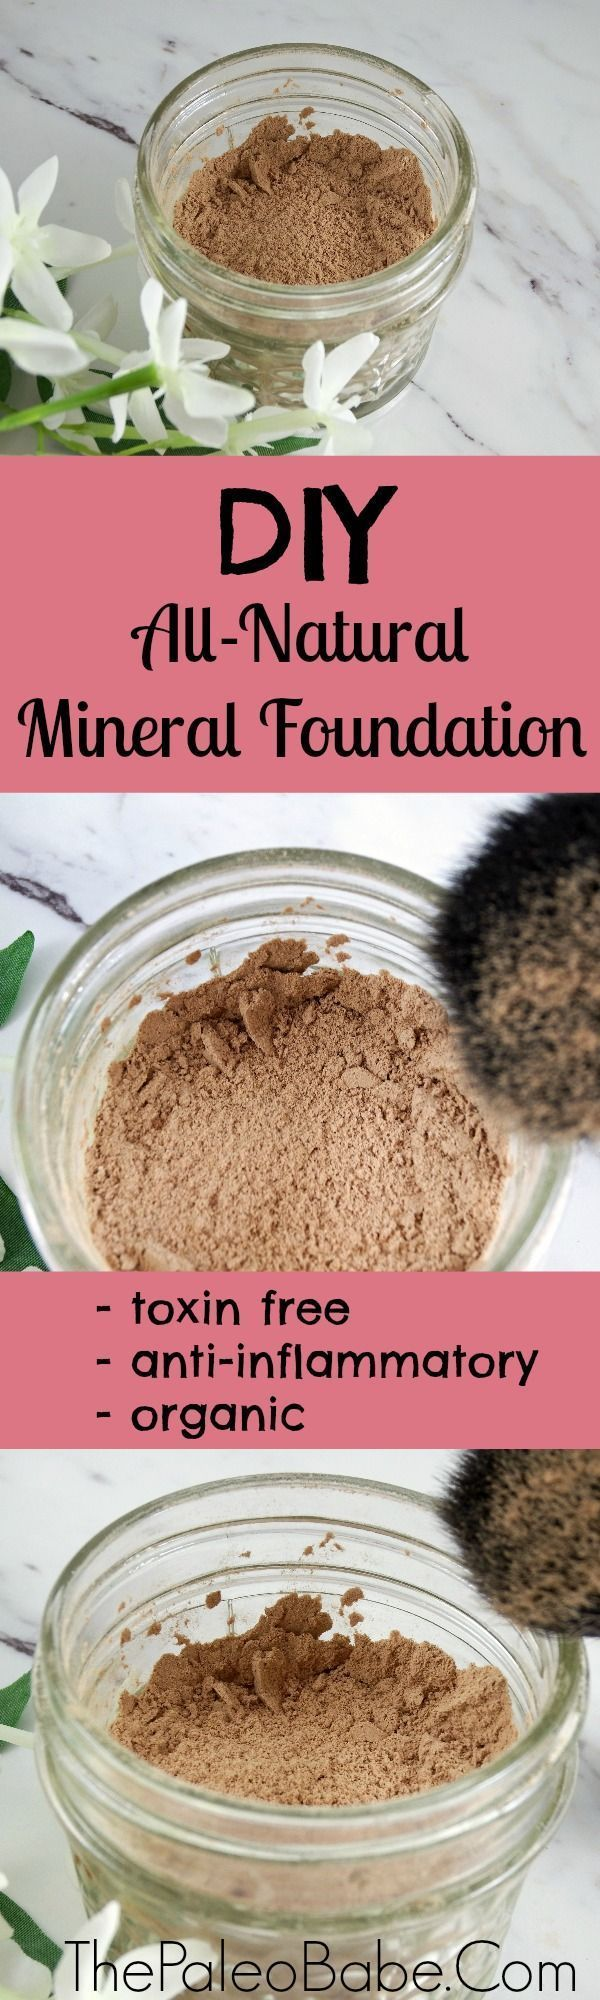 Make your own DIY natural mineral loose powder foundation out of ingredients your probably already have at home. I used arrowroot powder, cacao, cinnamon, ground ginger, bentonite clay and lavender essential oiL! It's detoxifying, anti-inflammatory and 10